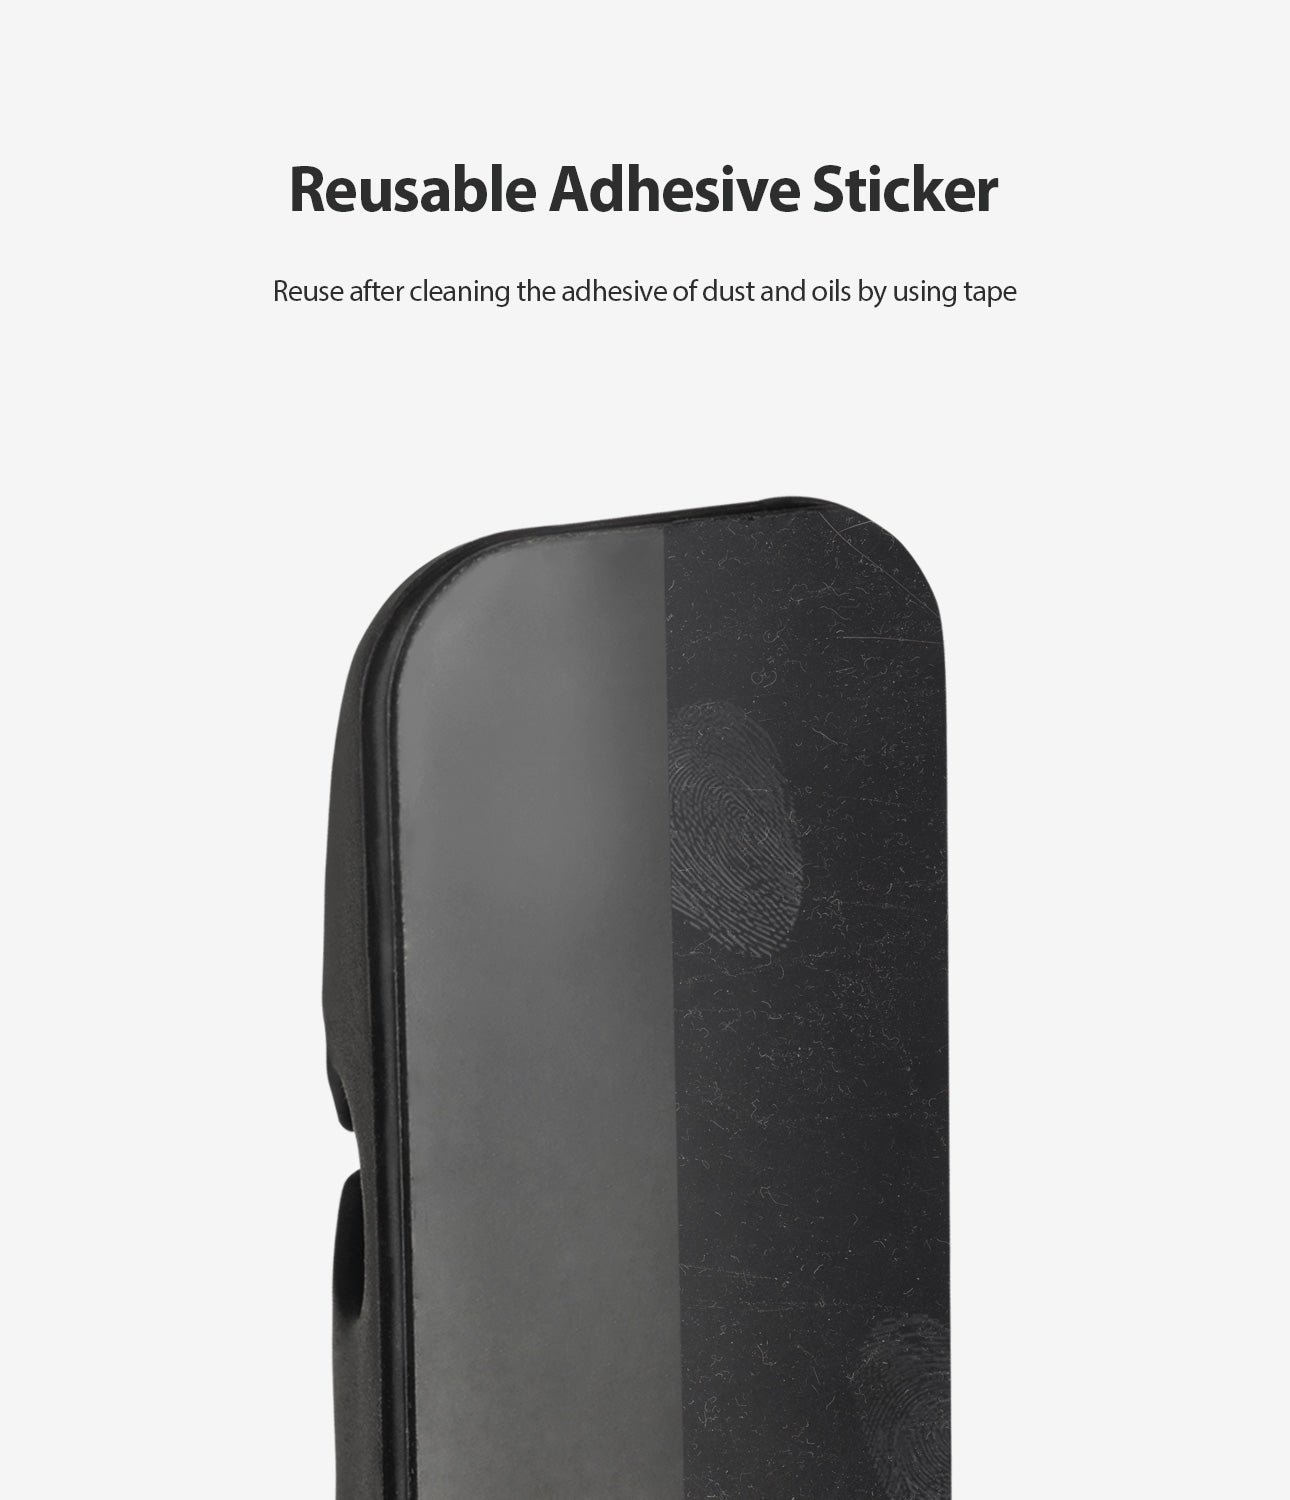 reusable adhesive sticker